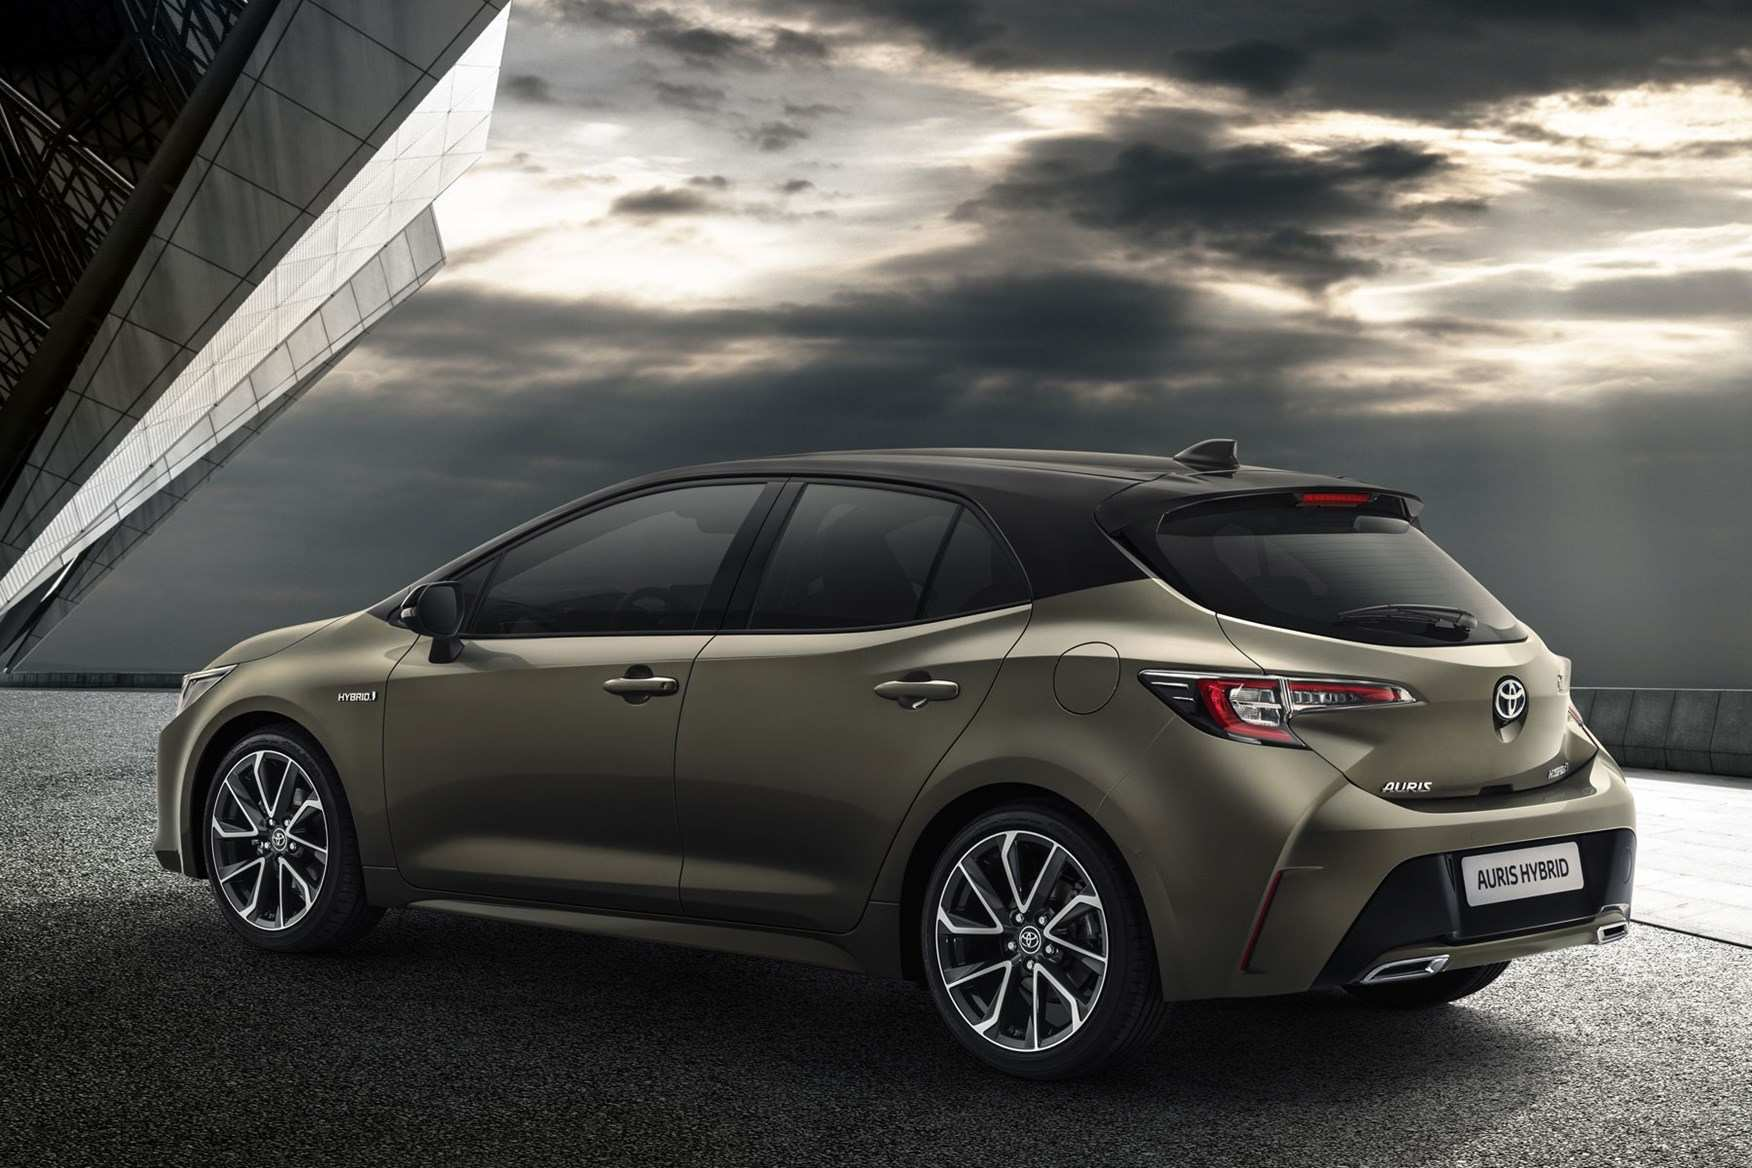 65 All New Toyota Auris 2019 Release Date Model